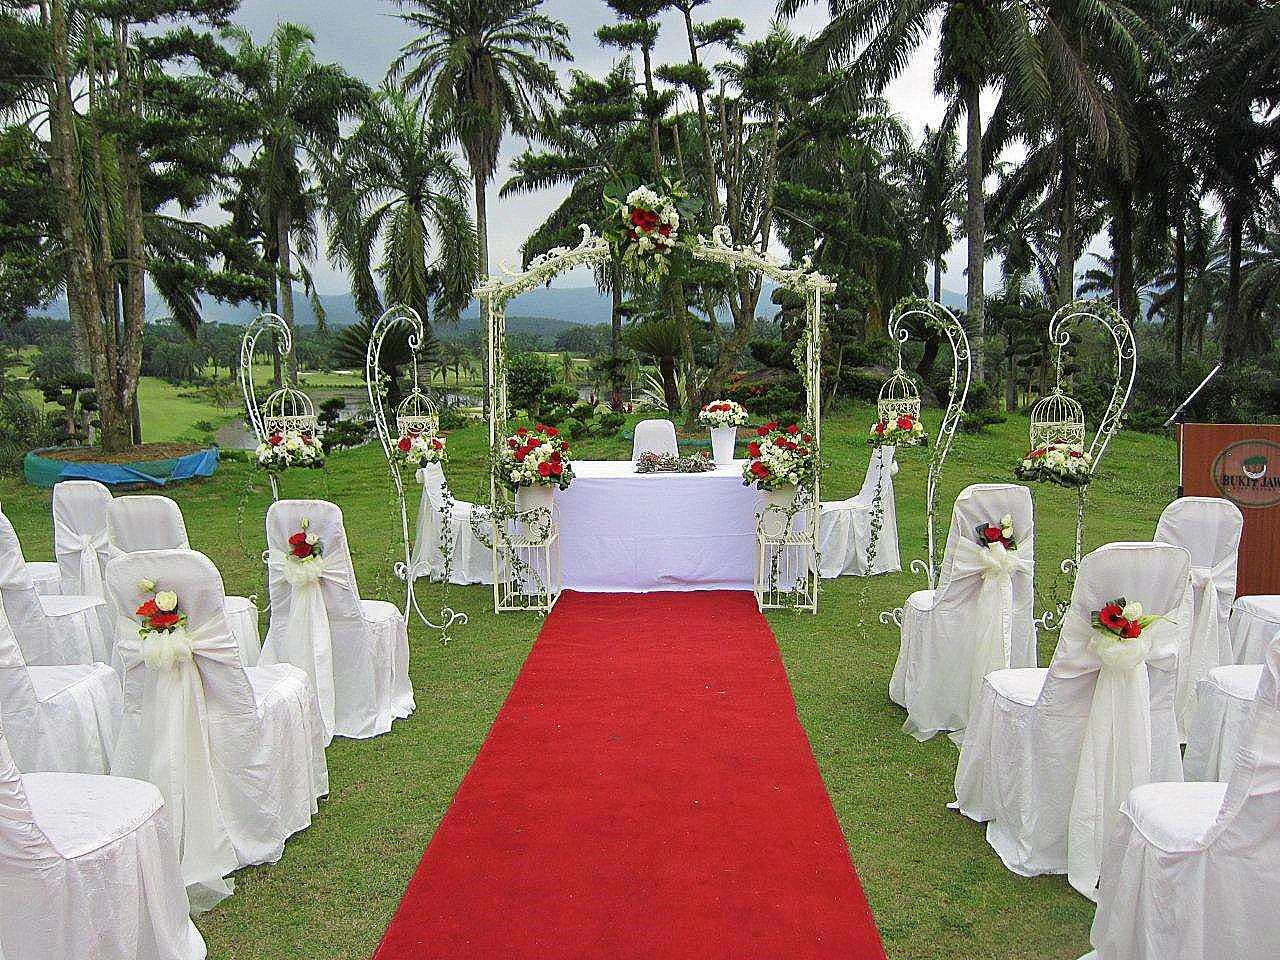 Liangliang diary garden wedding decoration bukit jawi golf course - Garden wedding decorations pictures ...